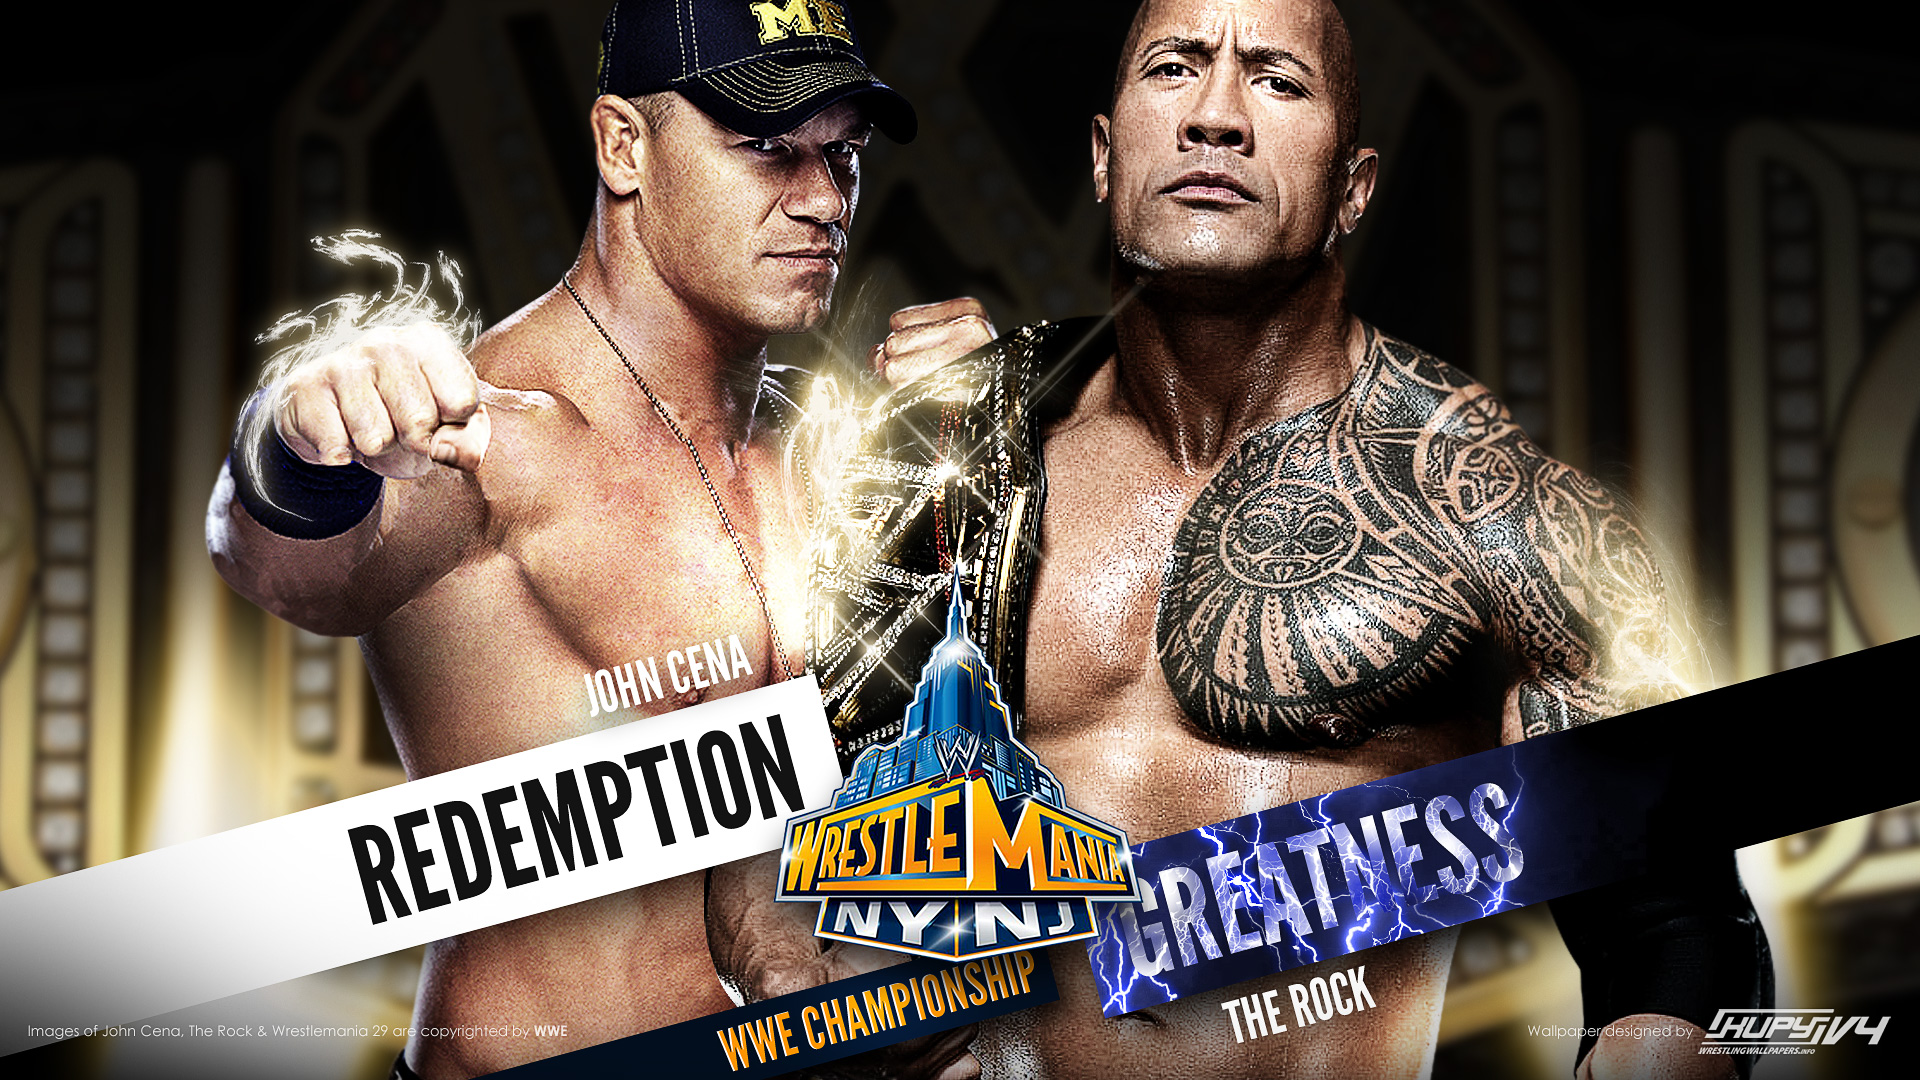 new wrestlemania 29 wallpaper: the rock vs. john cena ii - kupy